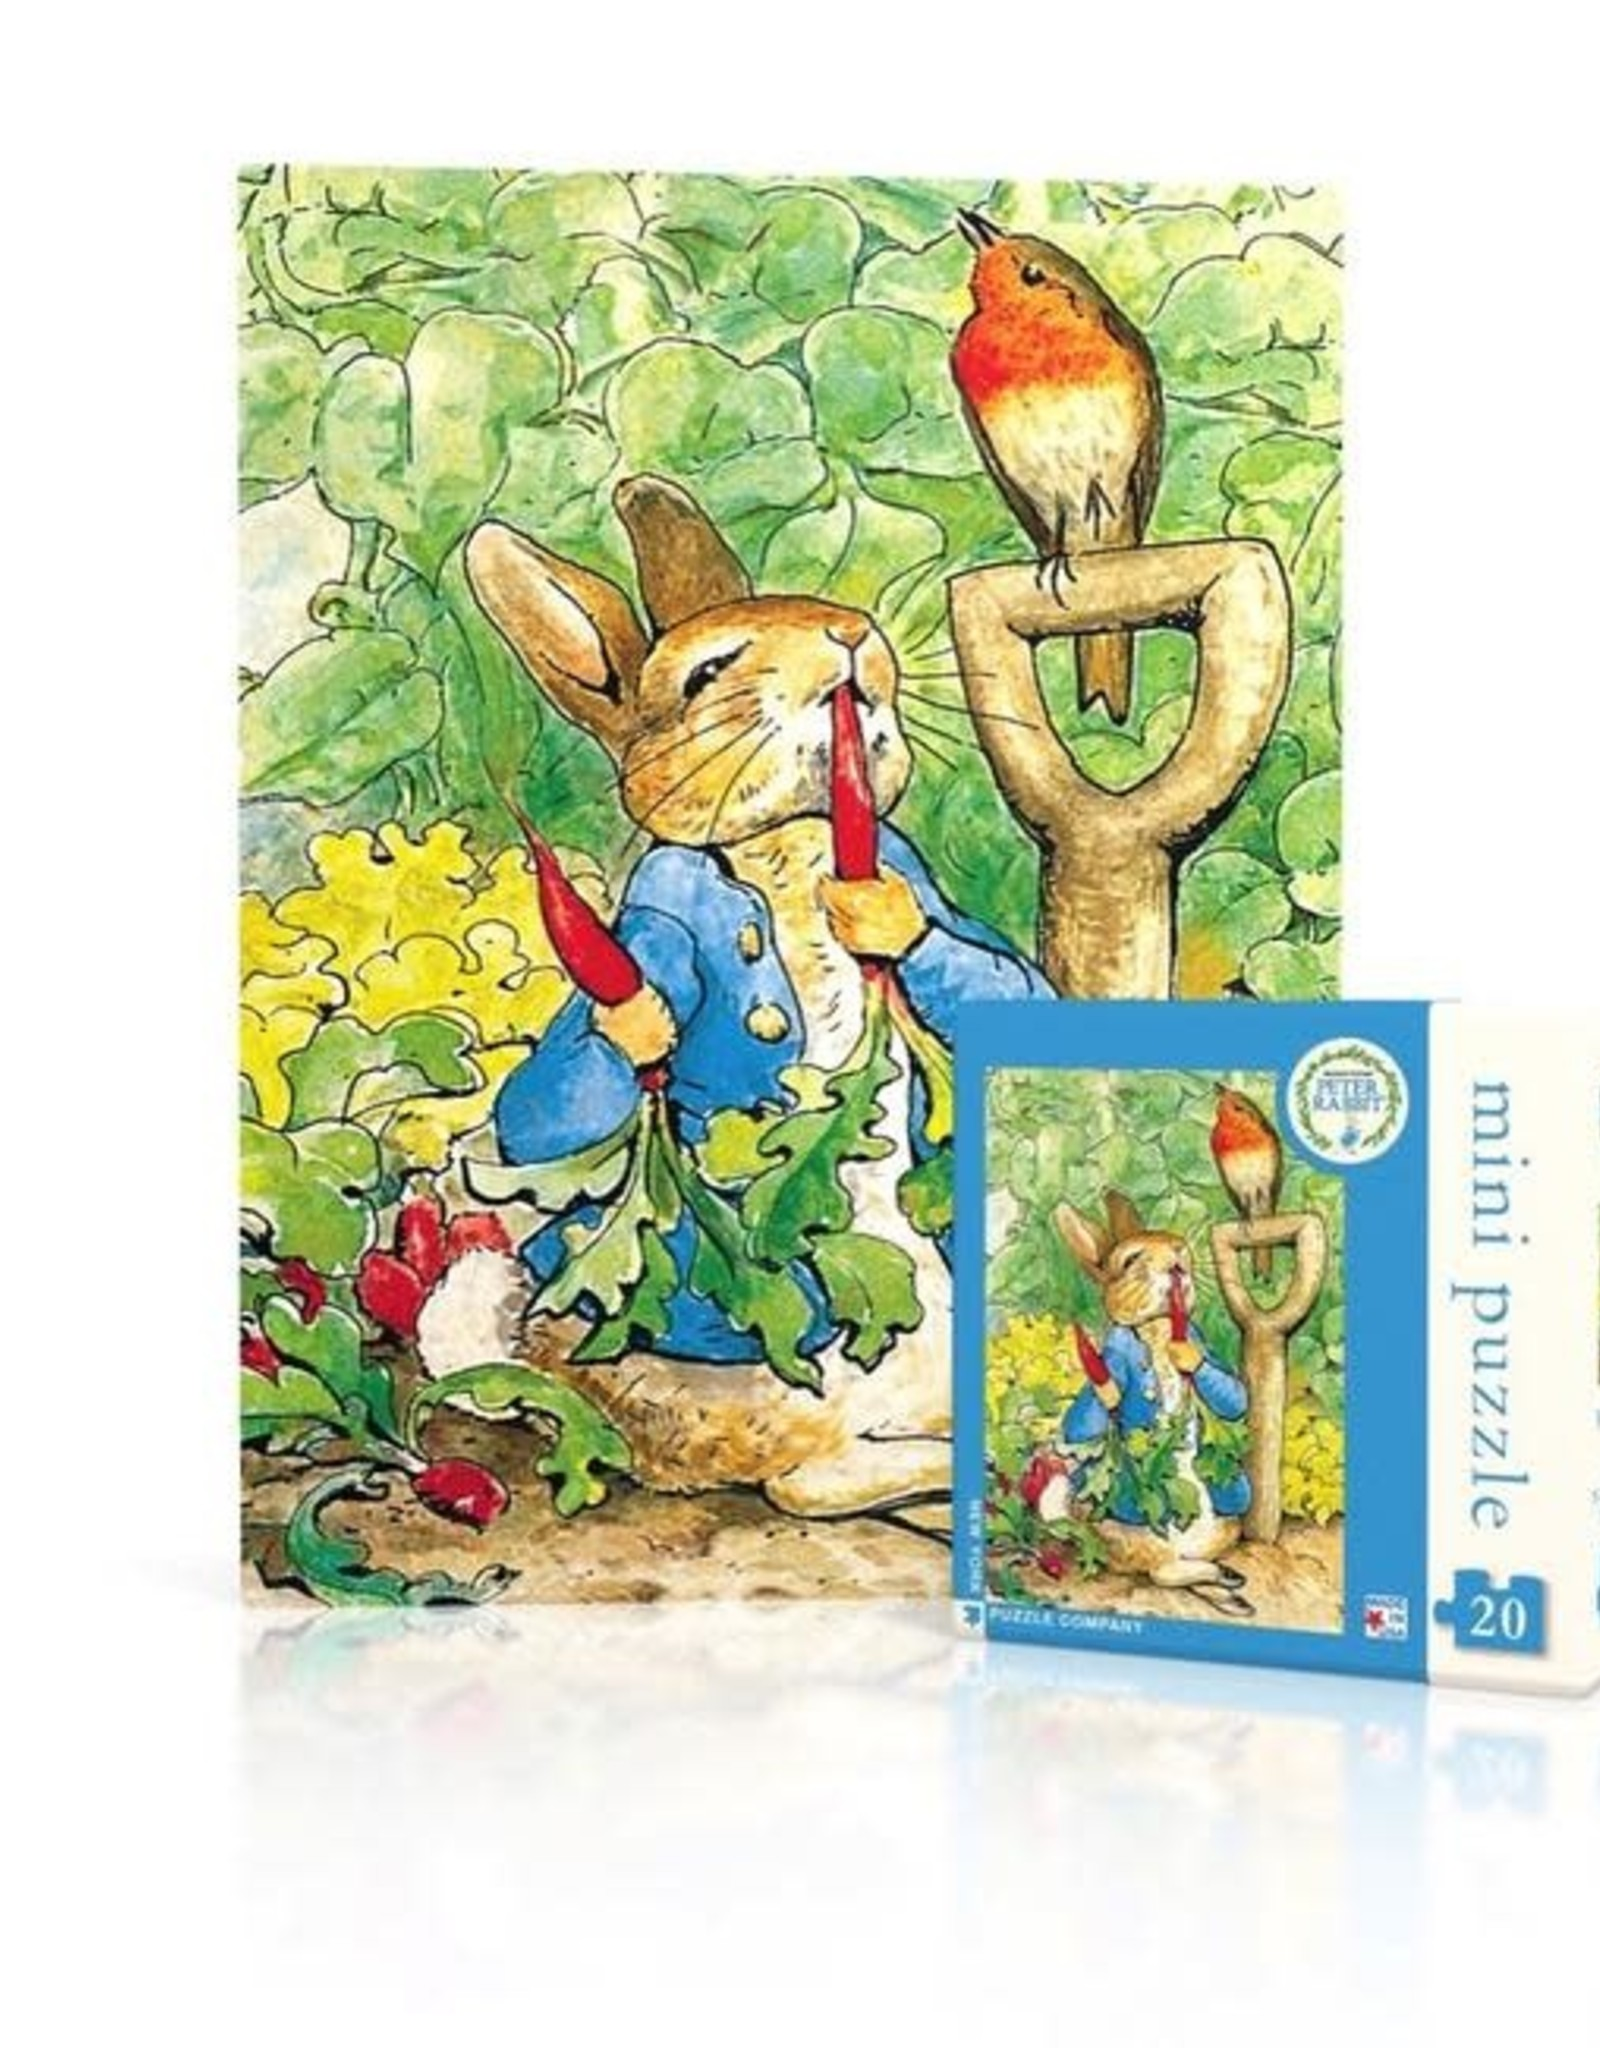 New York Puzzle Company 20 pc Puzzle: Peter Rabbit Mini